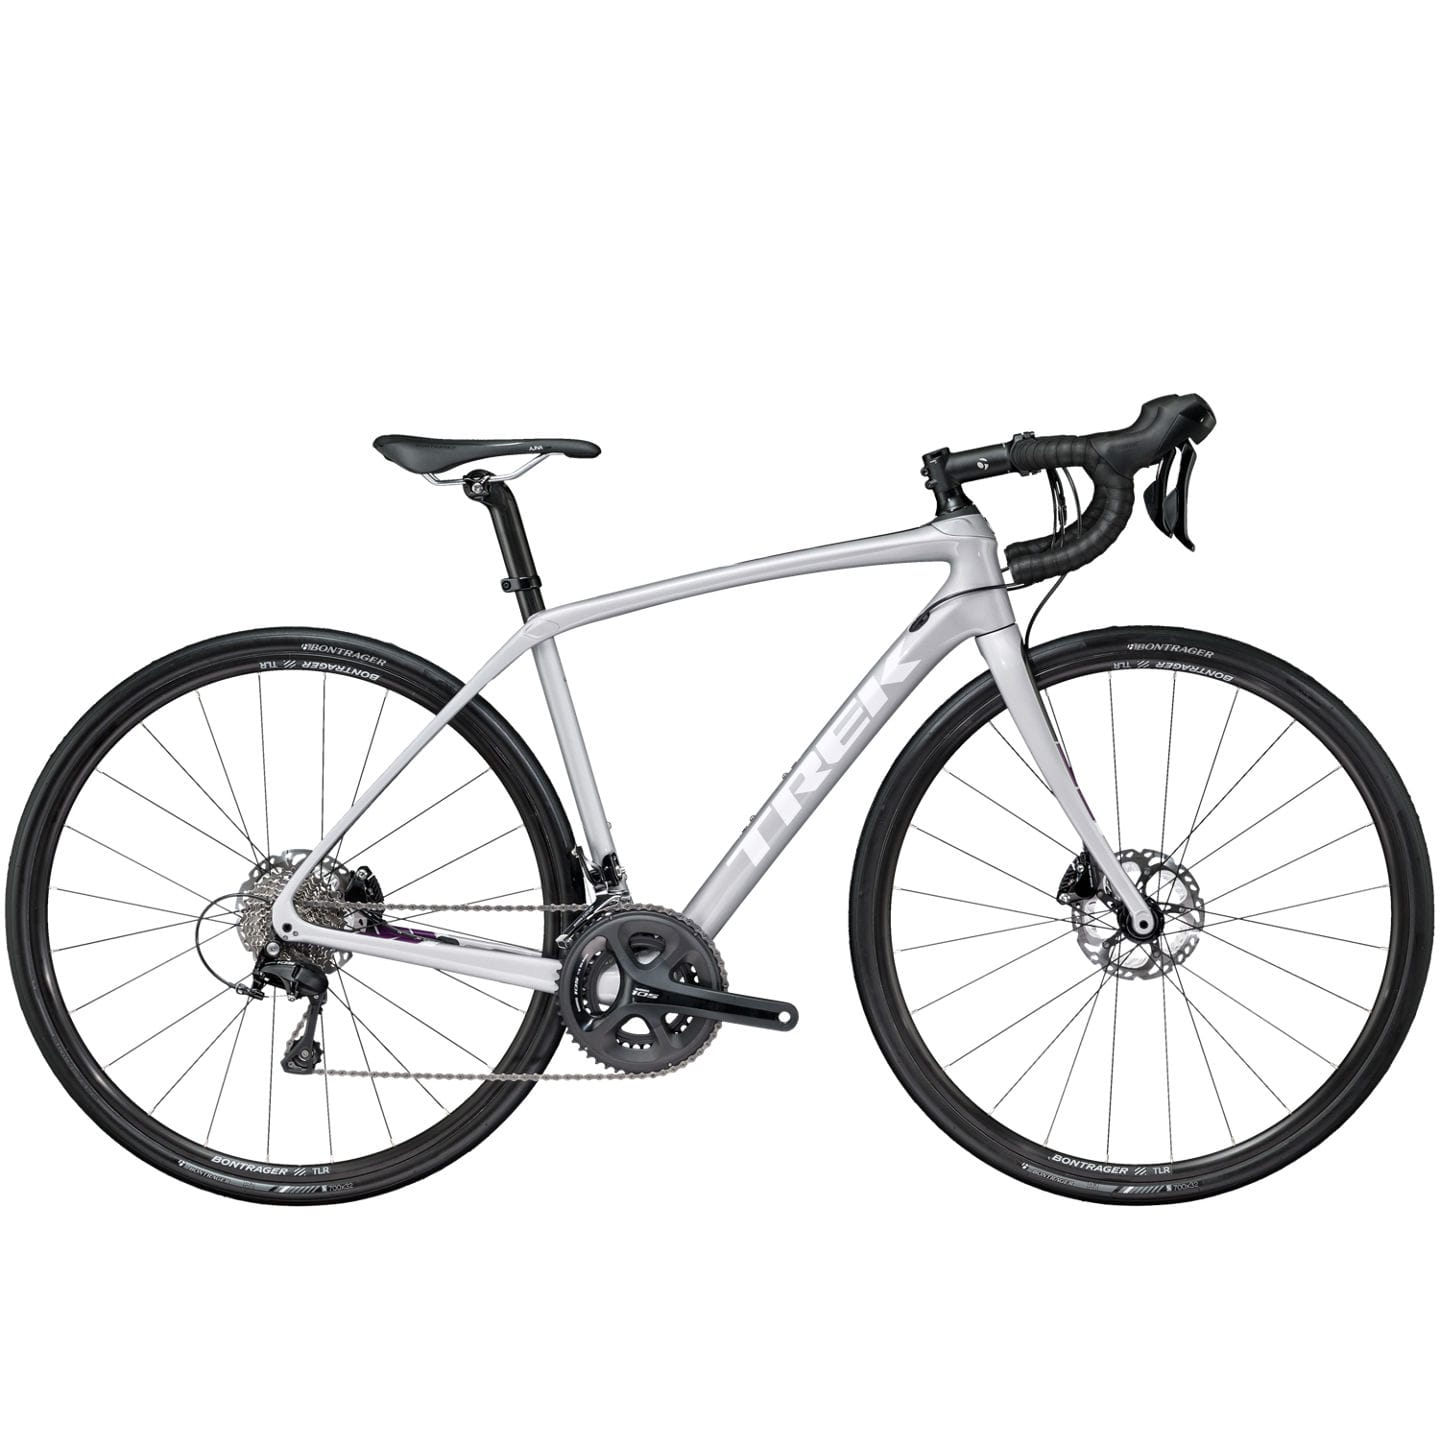 Trek Domane Sl 5 Disc Wsd Road Bike